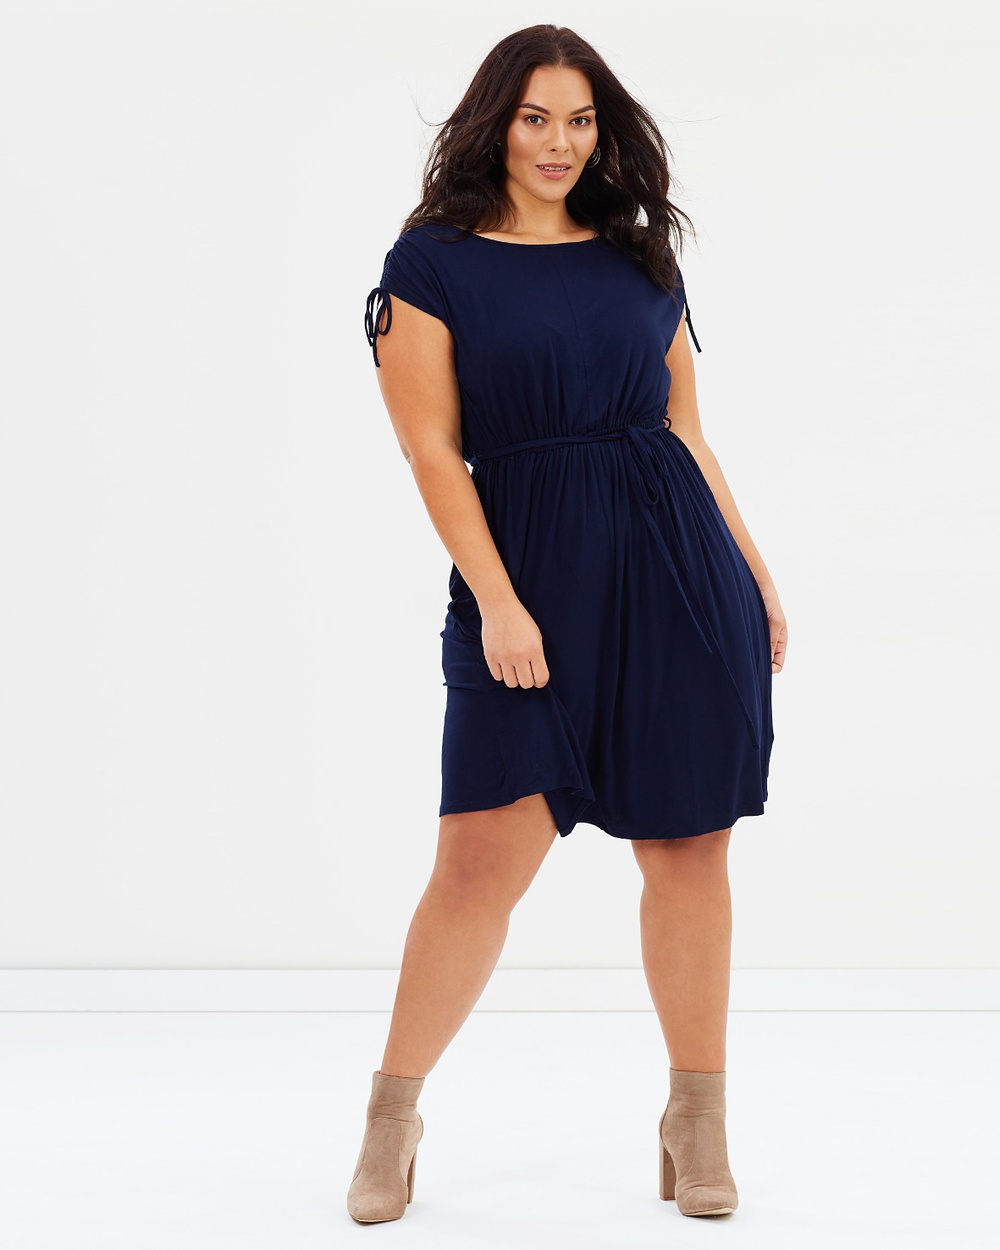 DP Curve Jersey Midi Dress Dresses Navy Jersey Midi Dress